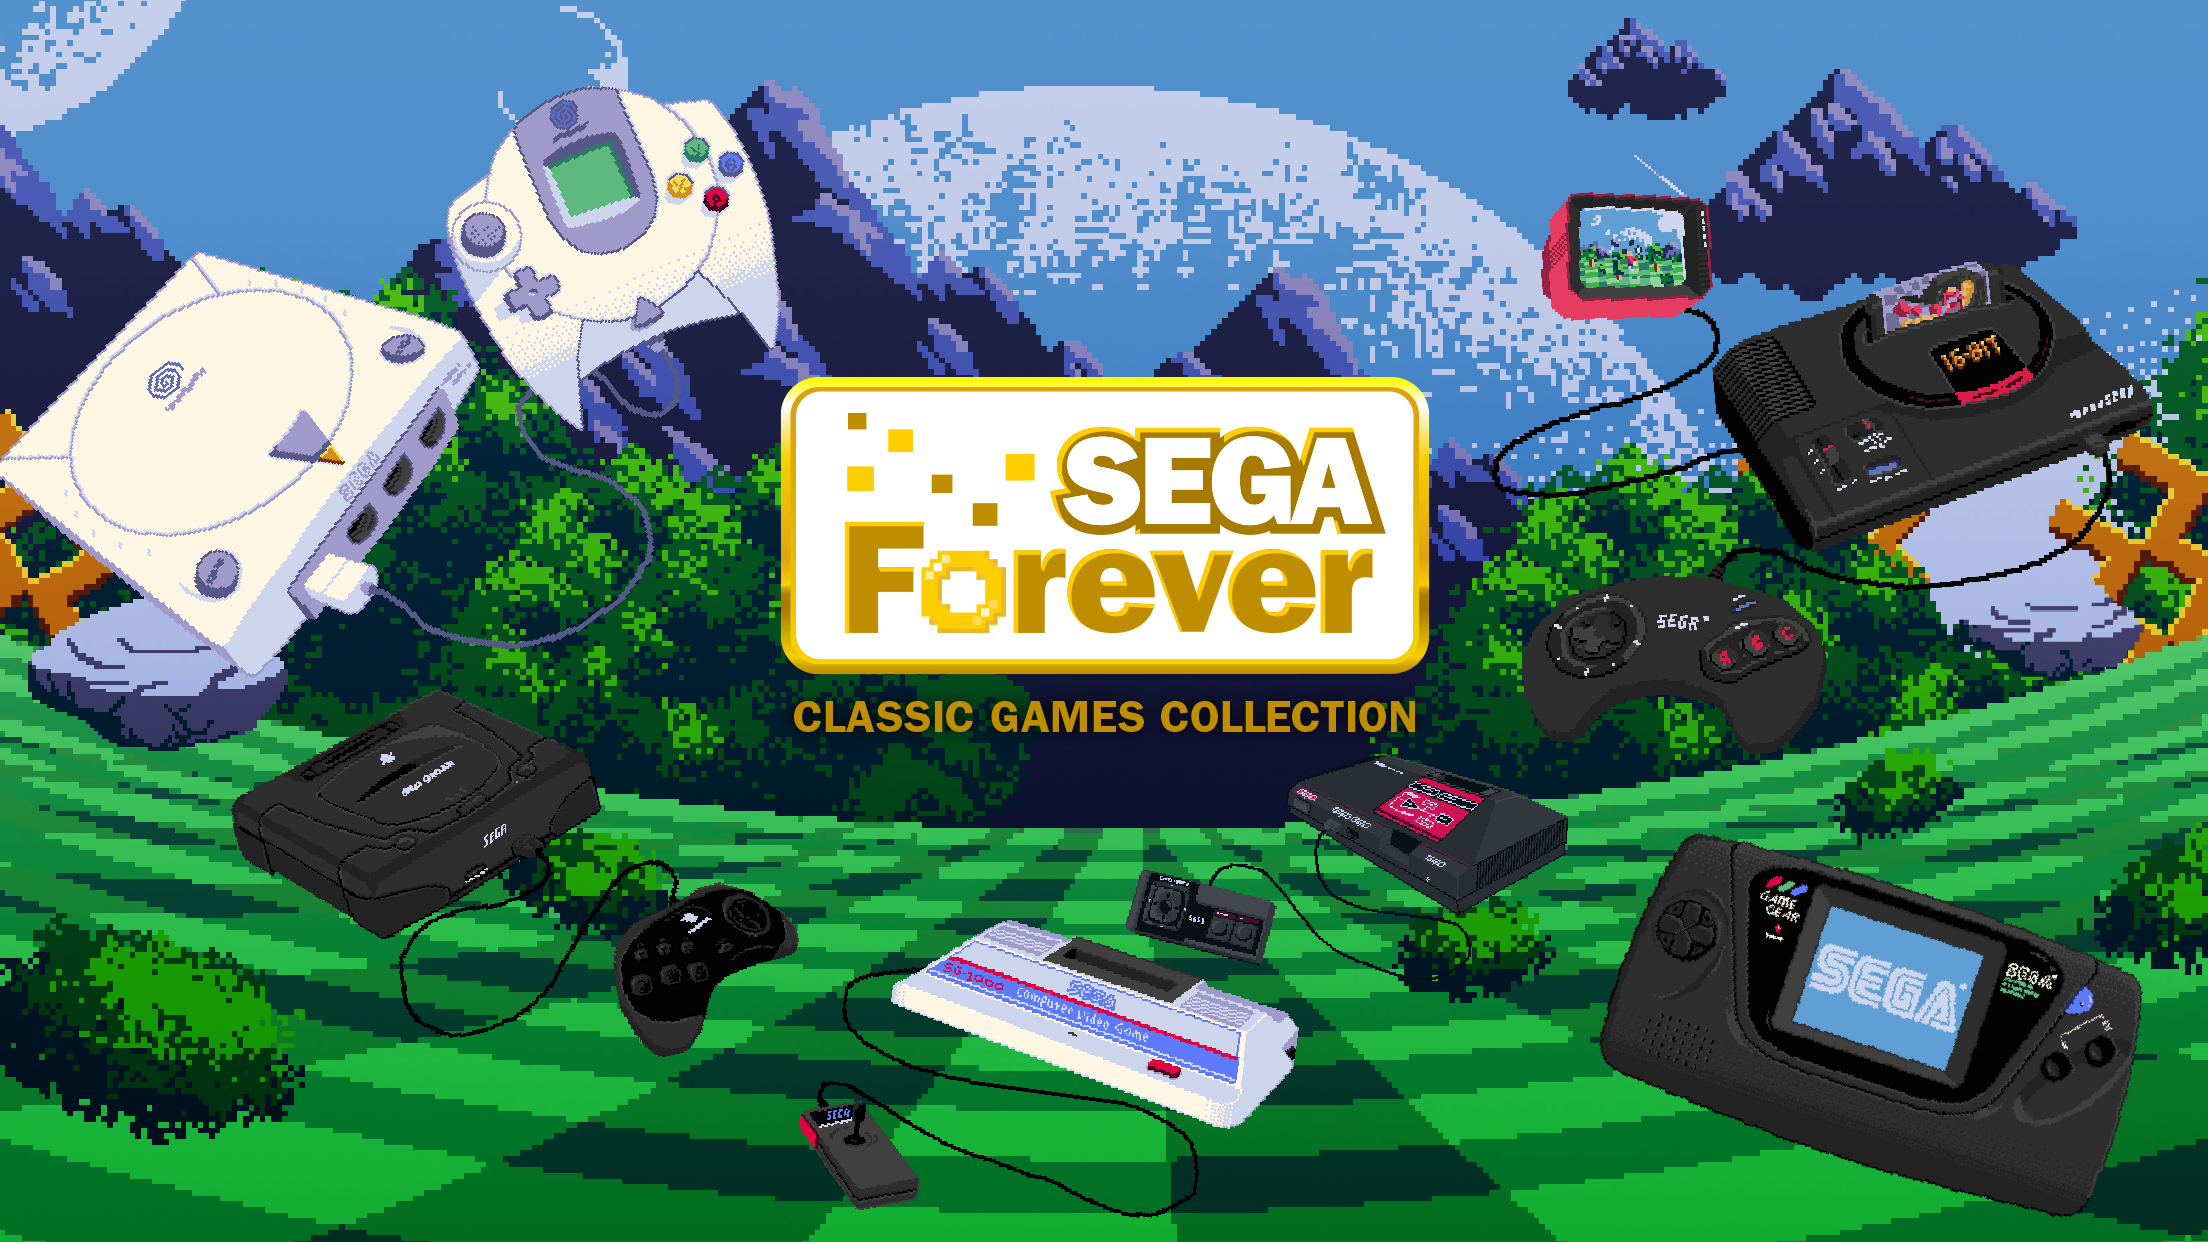 Sega Forever: Every Game Released So Far [Updated: 9/15/17]